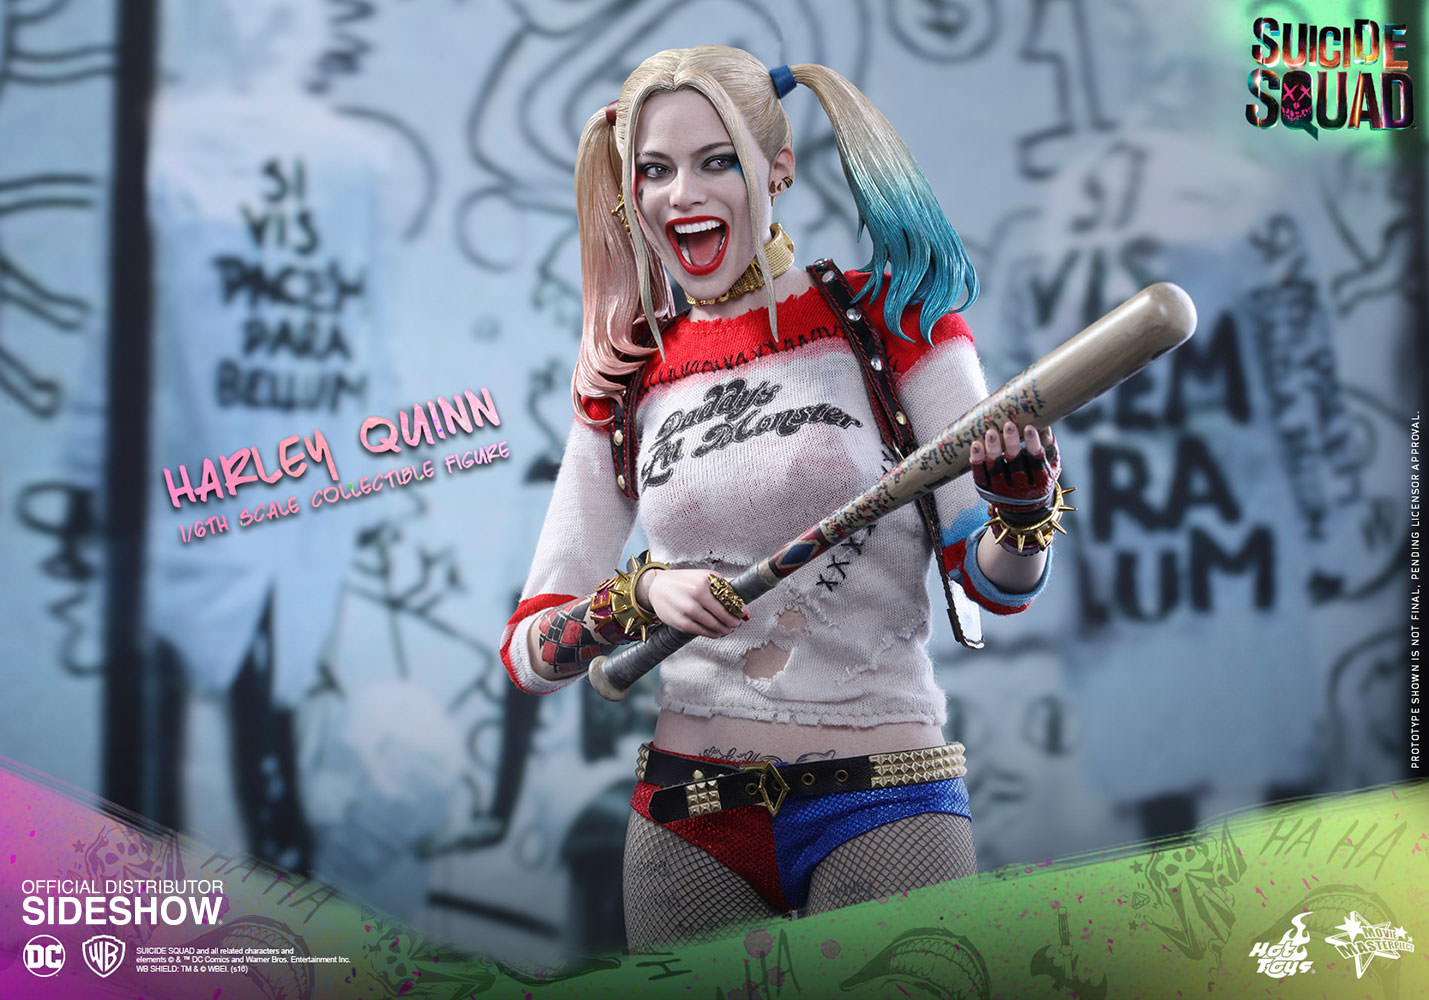 Harley Quinn Sixth Scale Figure by Hot Toys